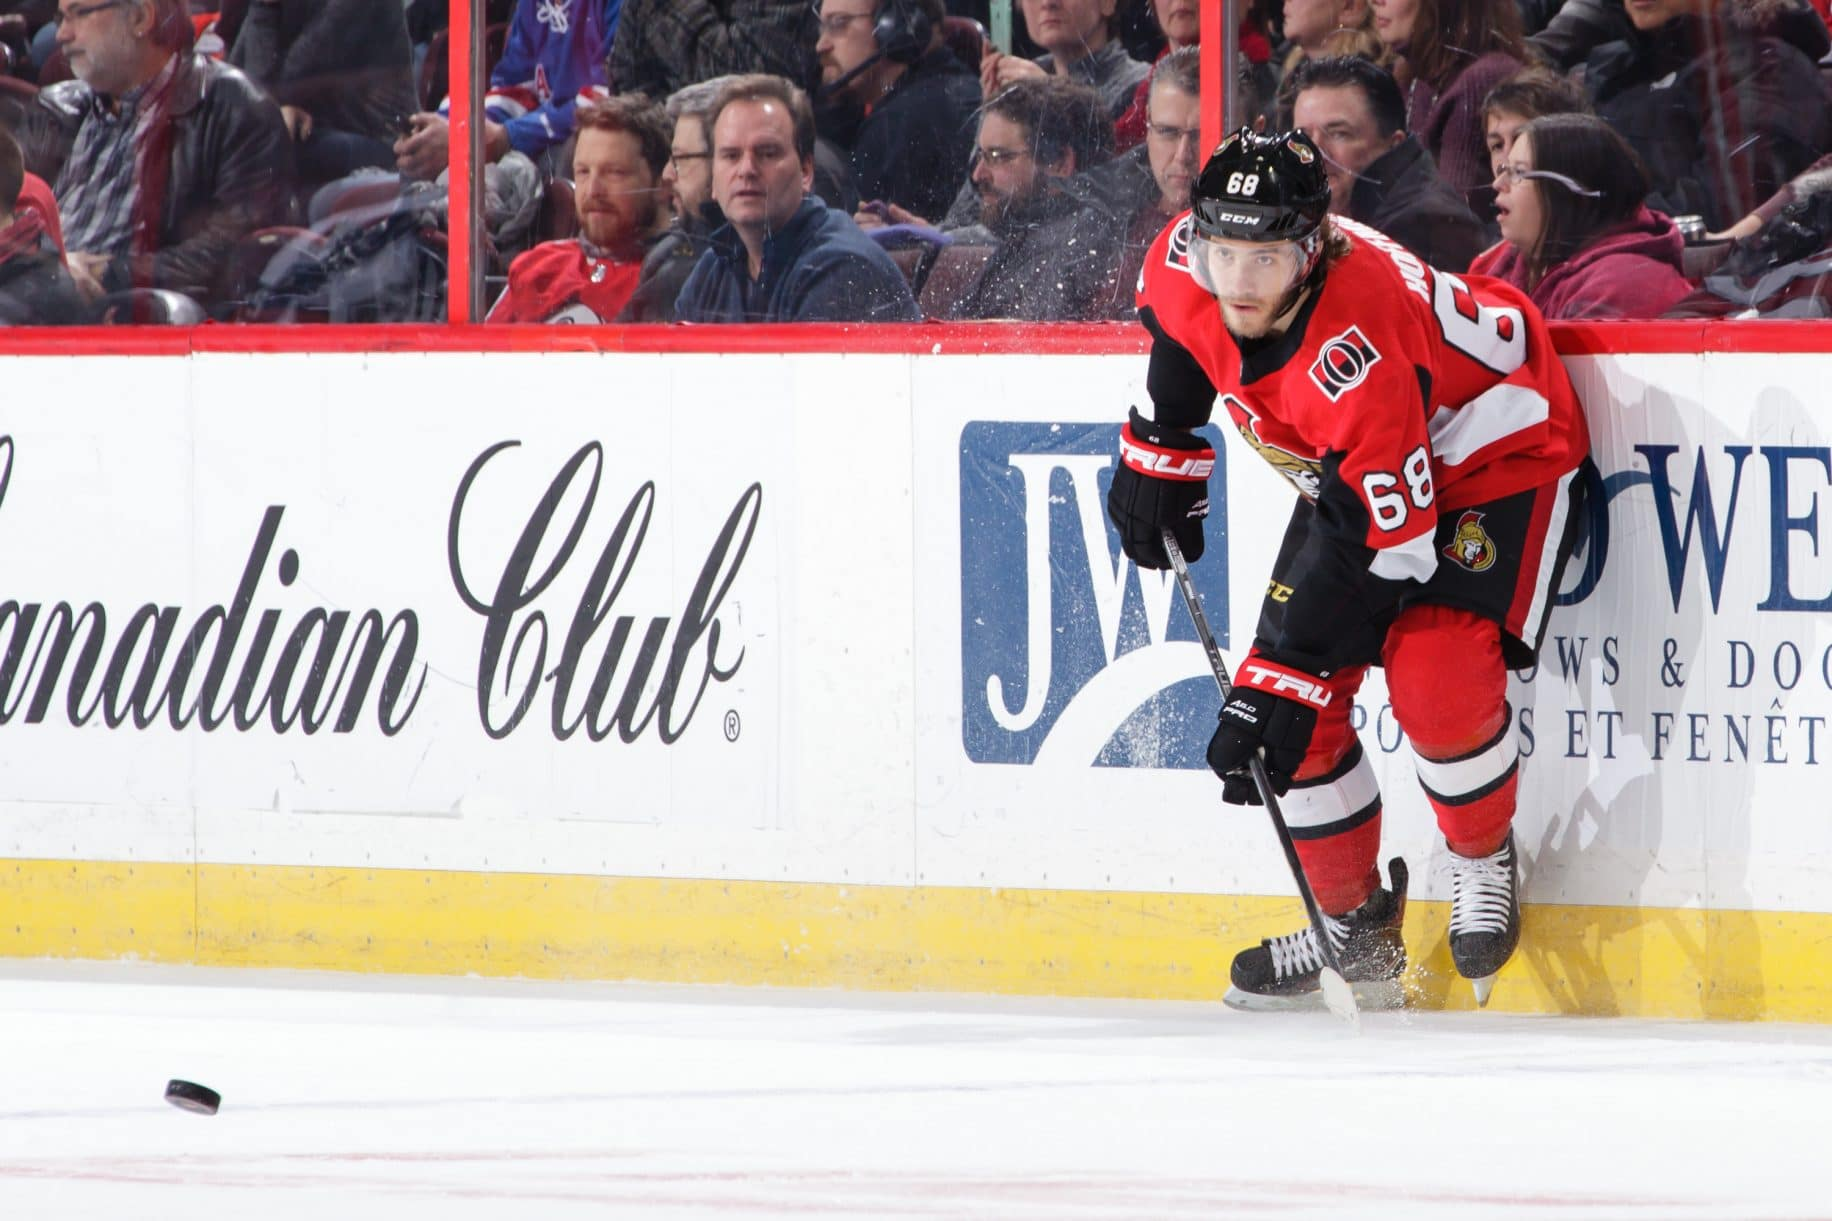 newest c0445 35a18 New Jersey Devils NHL trade deadline preview